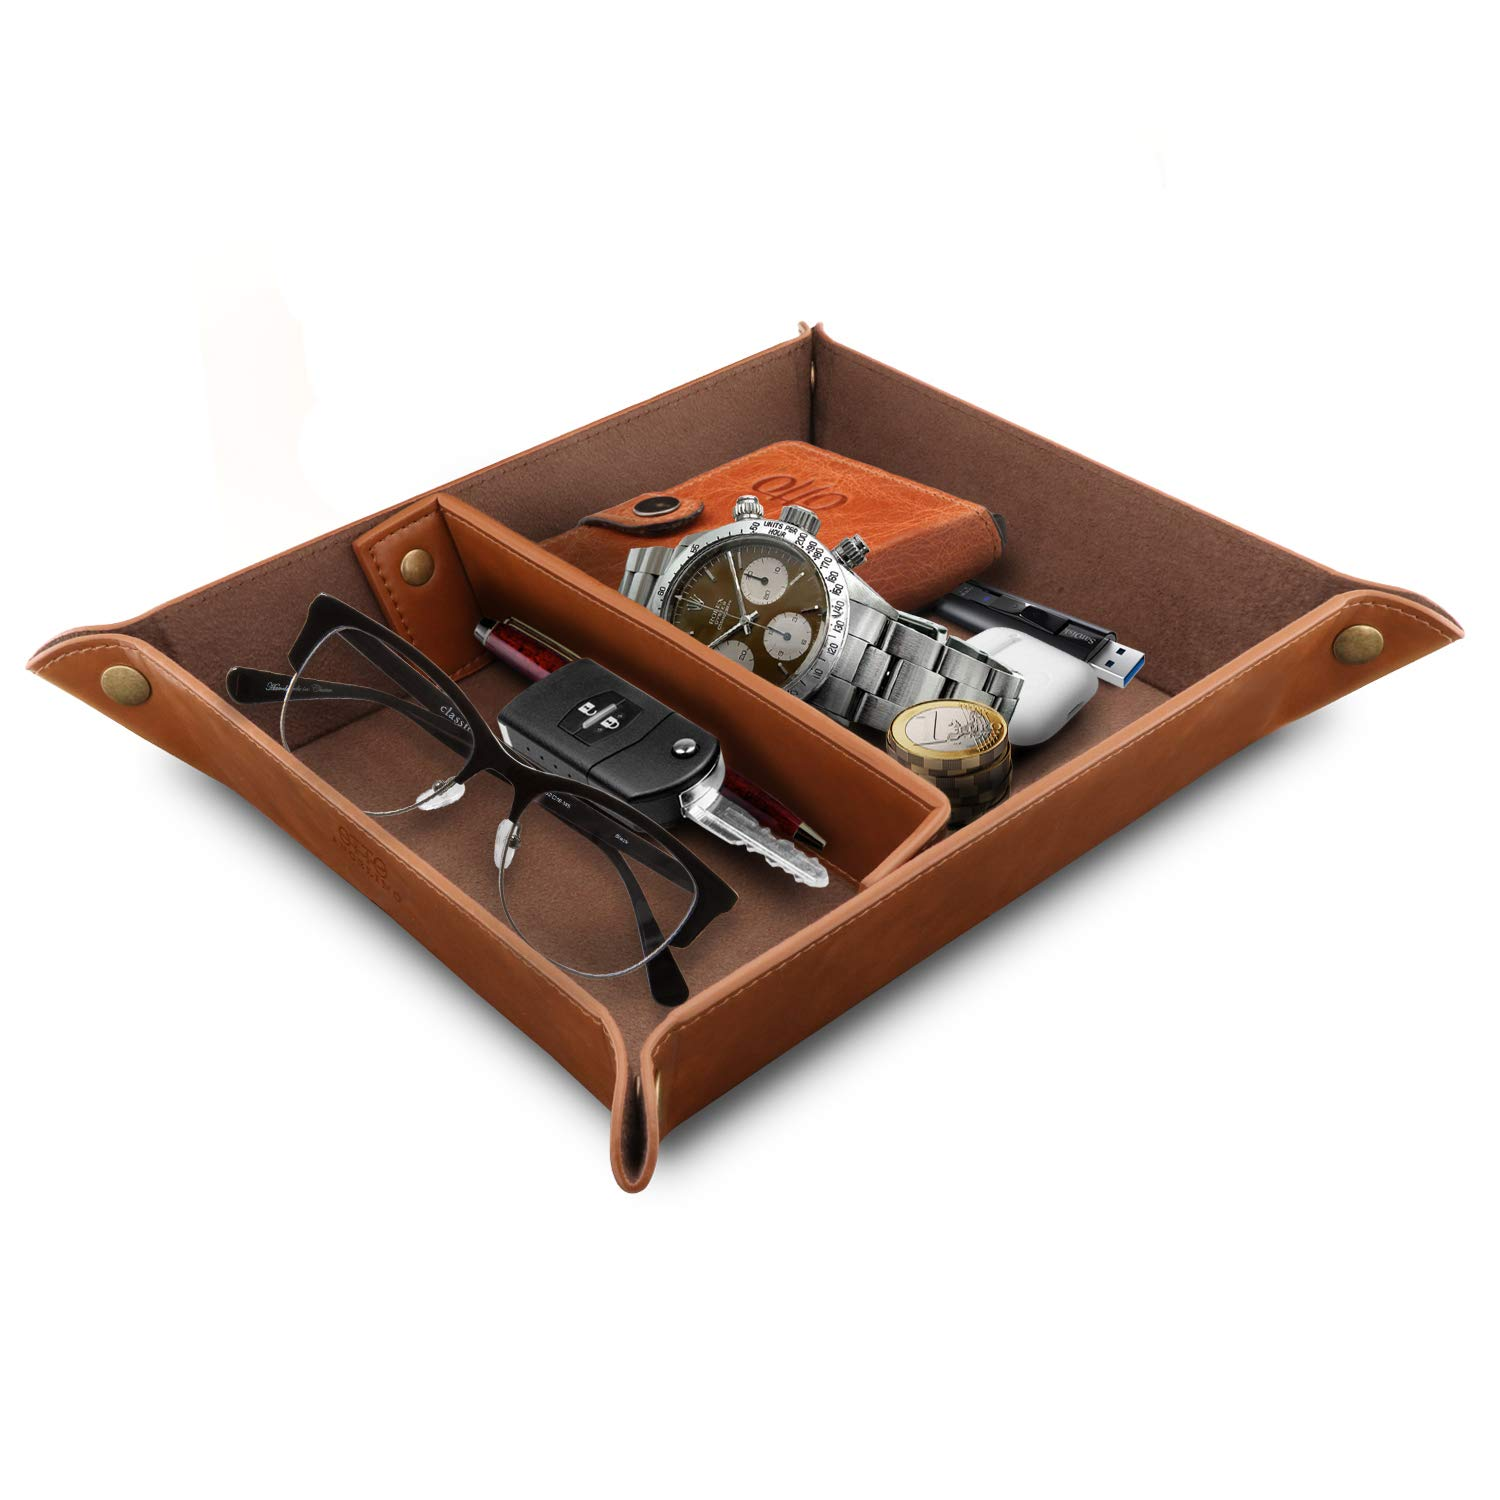 Londo Leather Tray Organizer Watches Coins Keys Light Brown Practical Storage Box for Wallets Cell Phones and Office Equipment